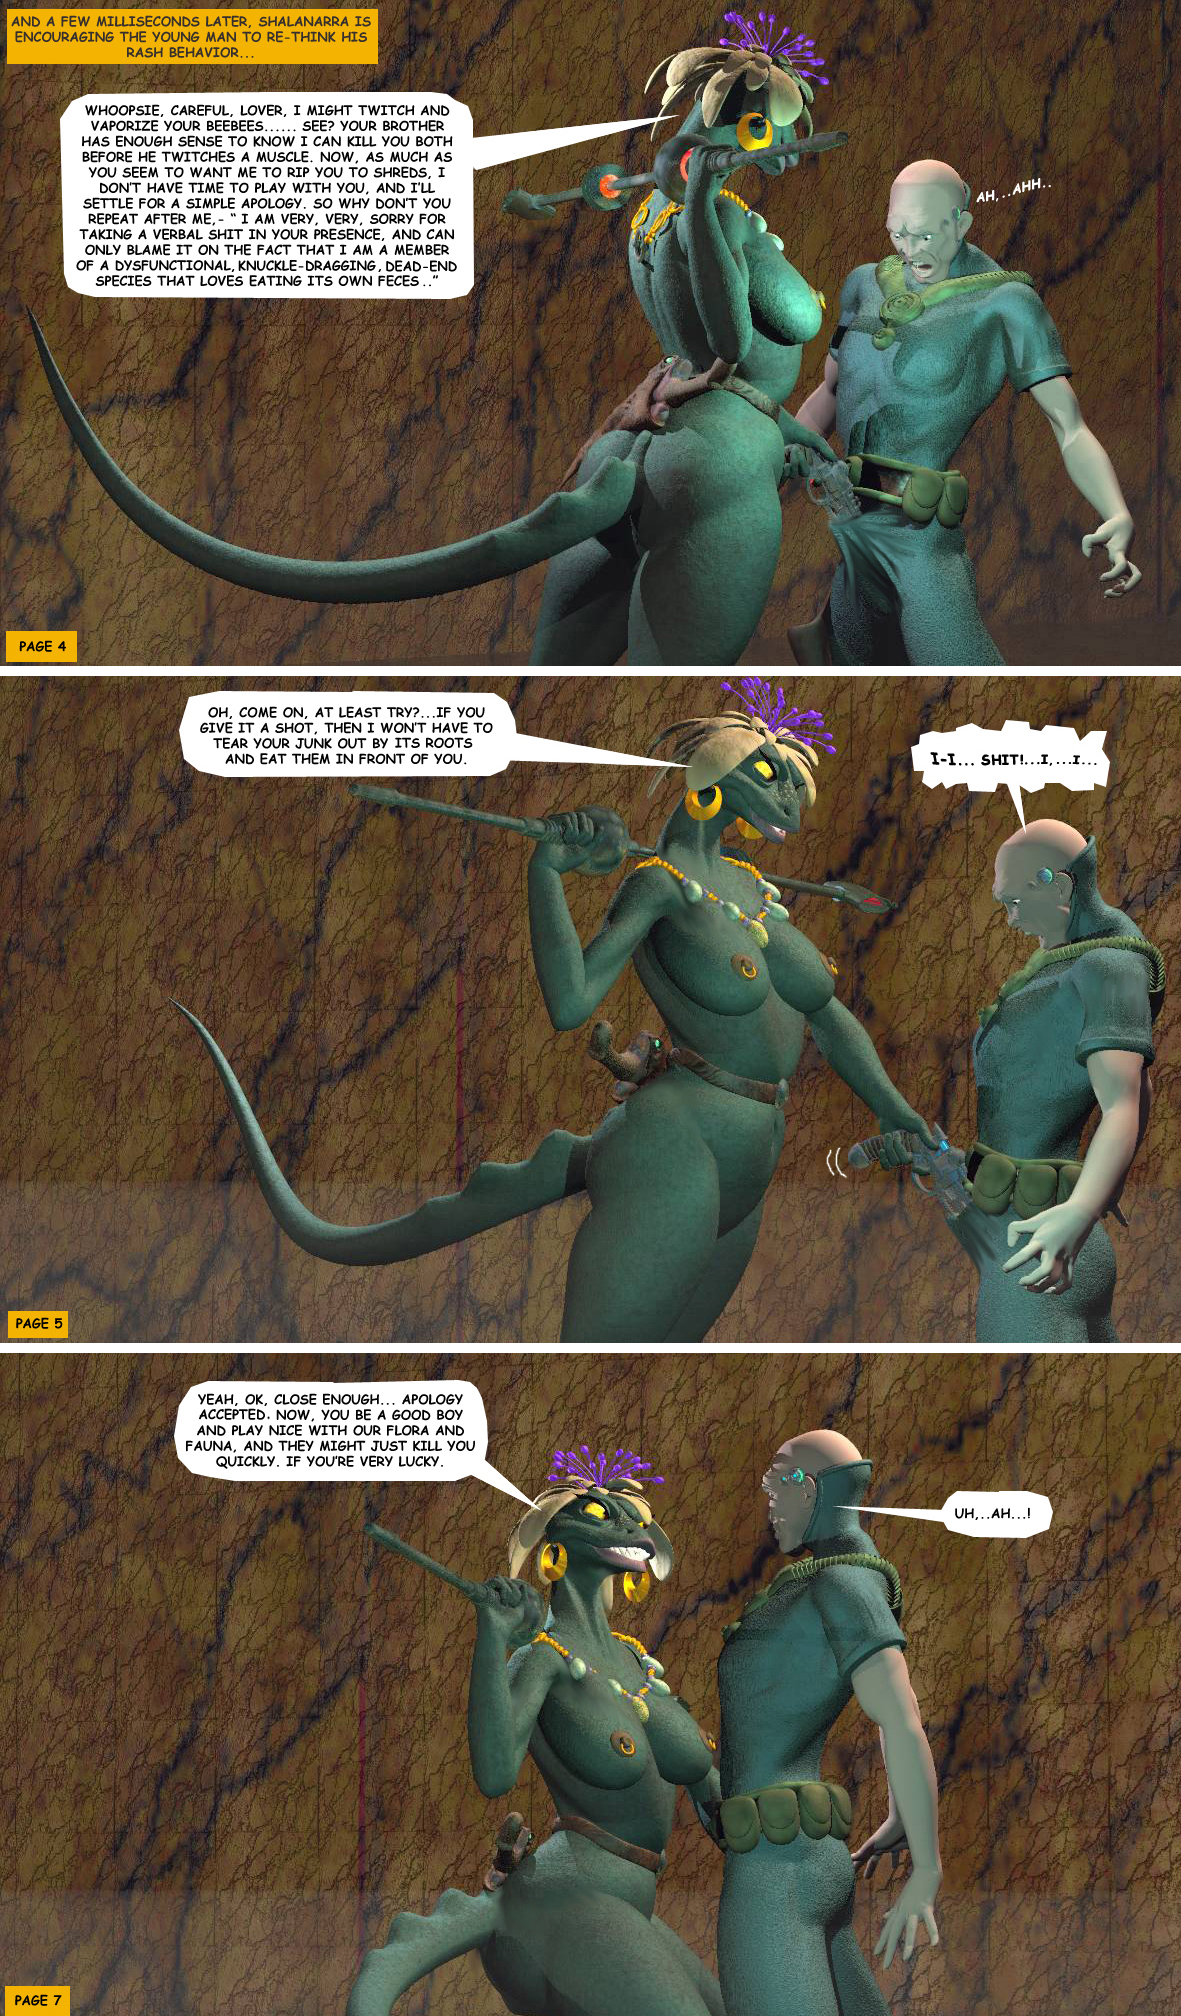 STORM OVER WHOOMERA: PAGE 12